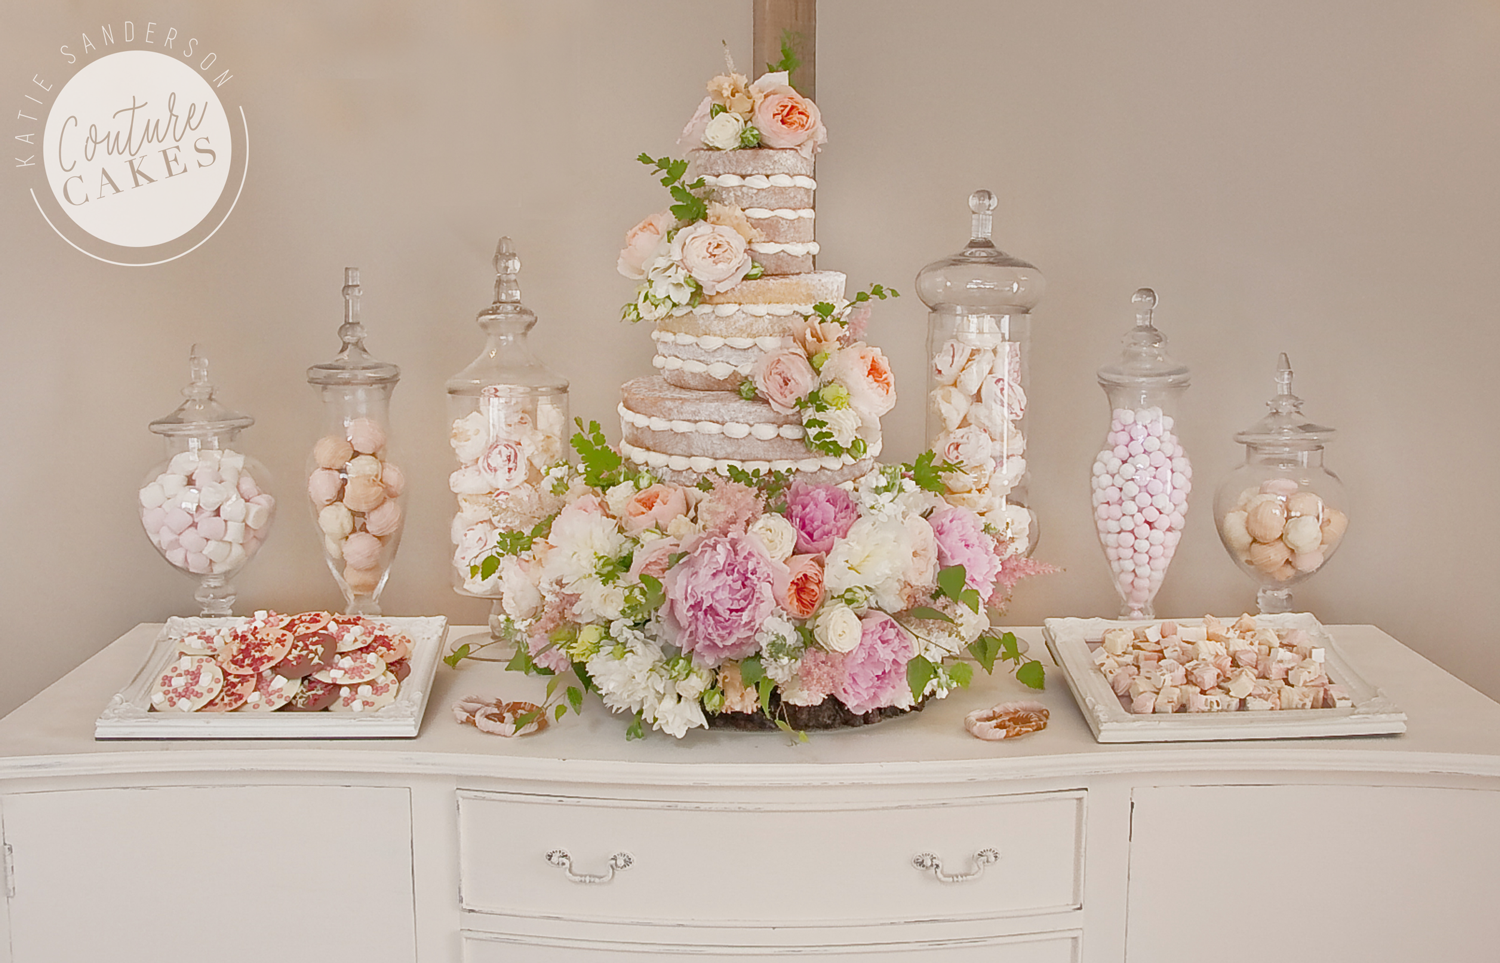 Naked Cake Serves 110 portions, Price £335 plus £175-250 flowers, £180 for treats & jar hire, plated treats £35 per plate